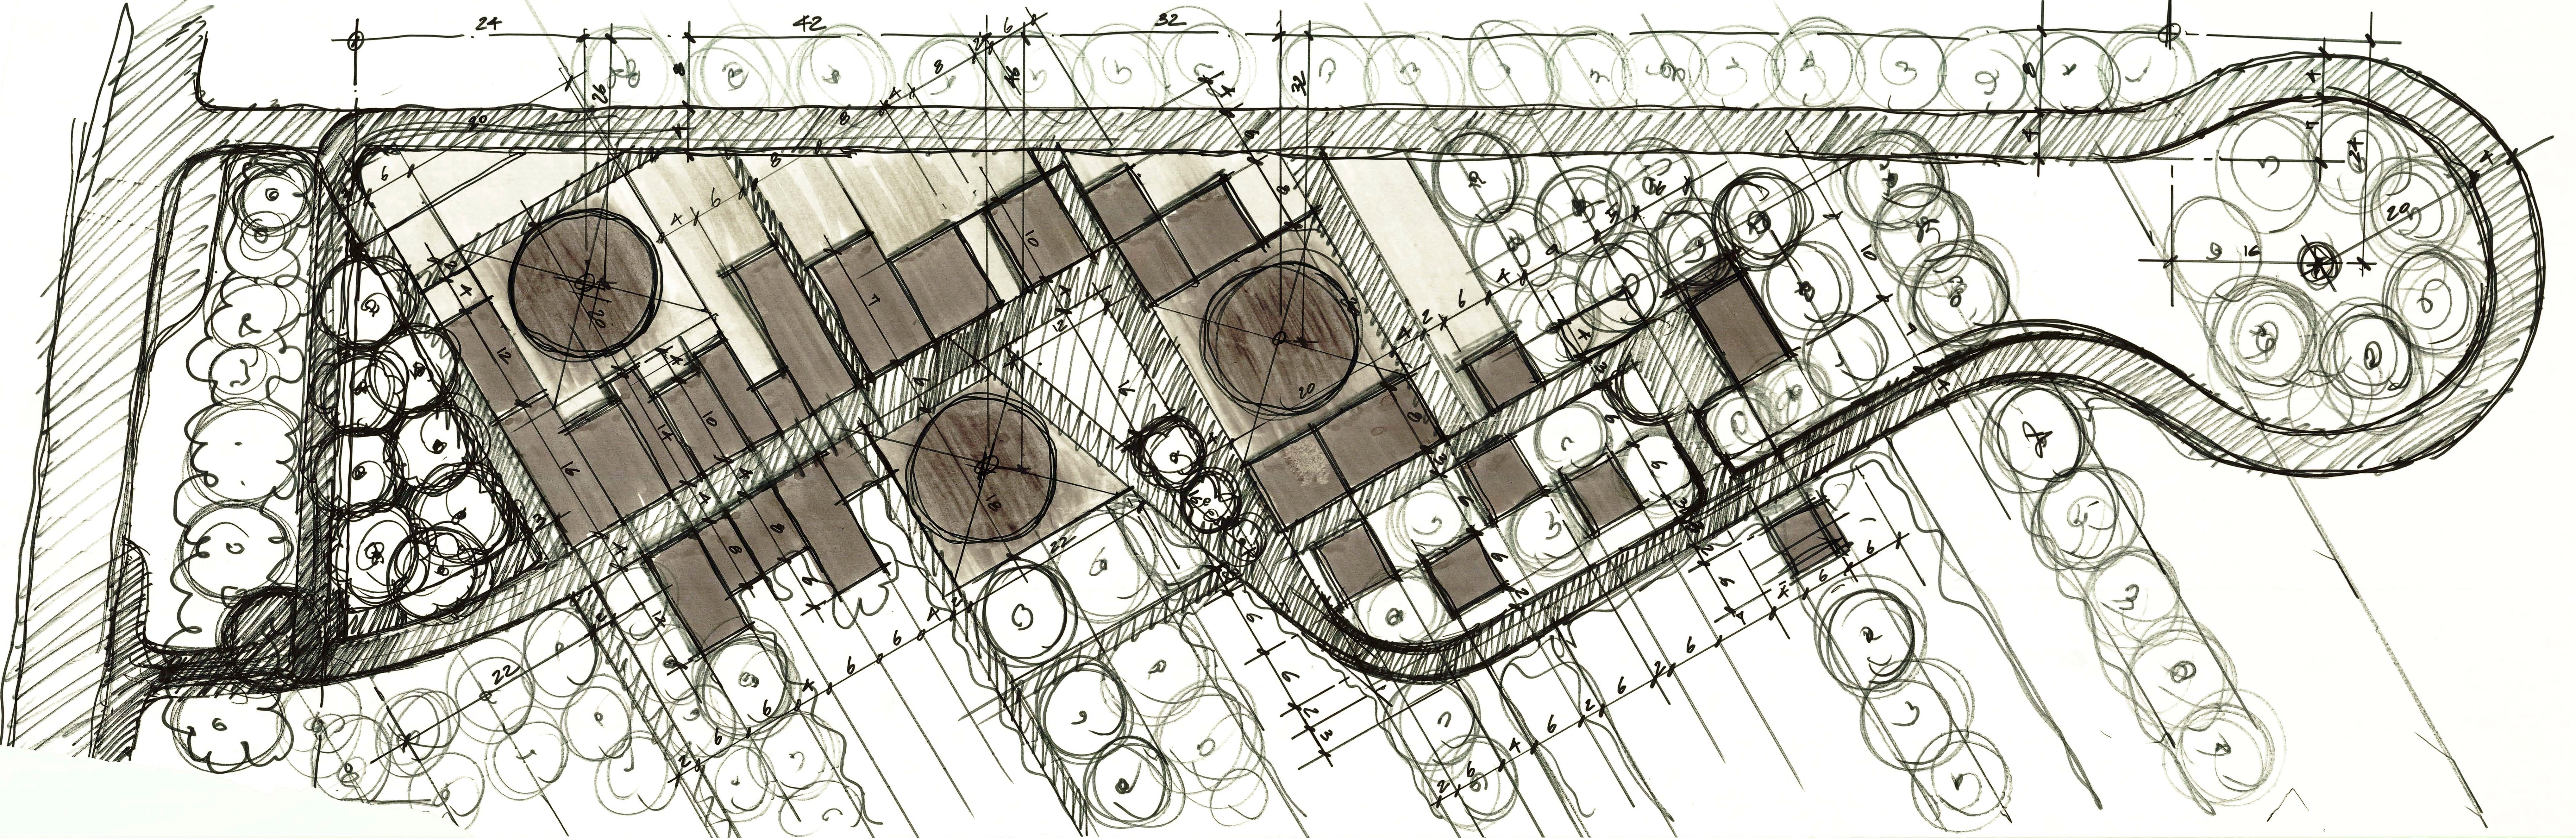 site plan-reduced